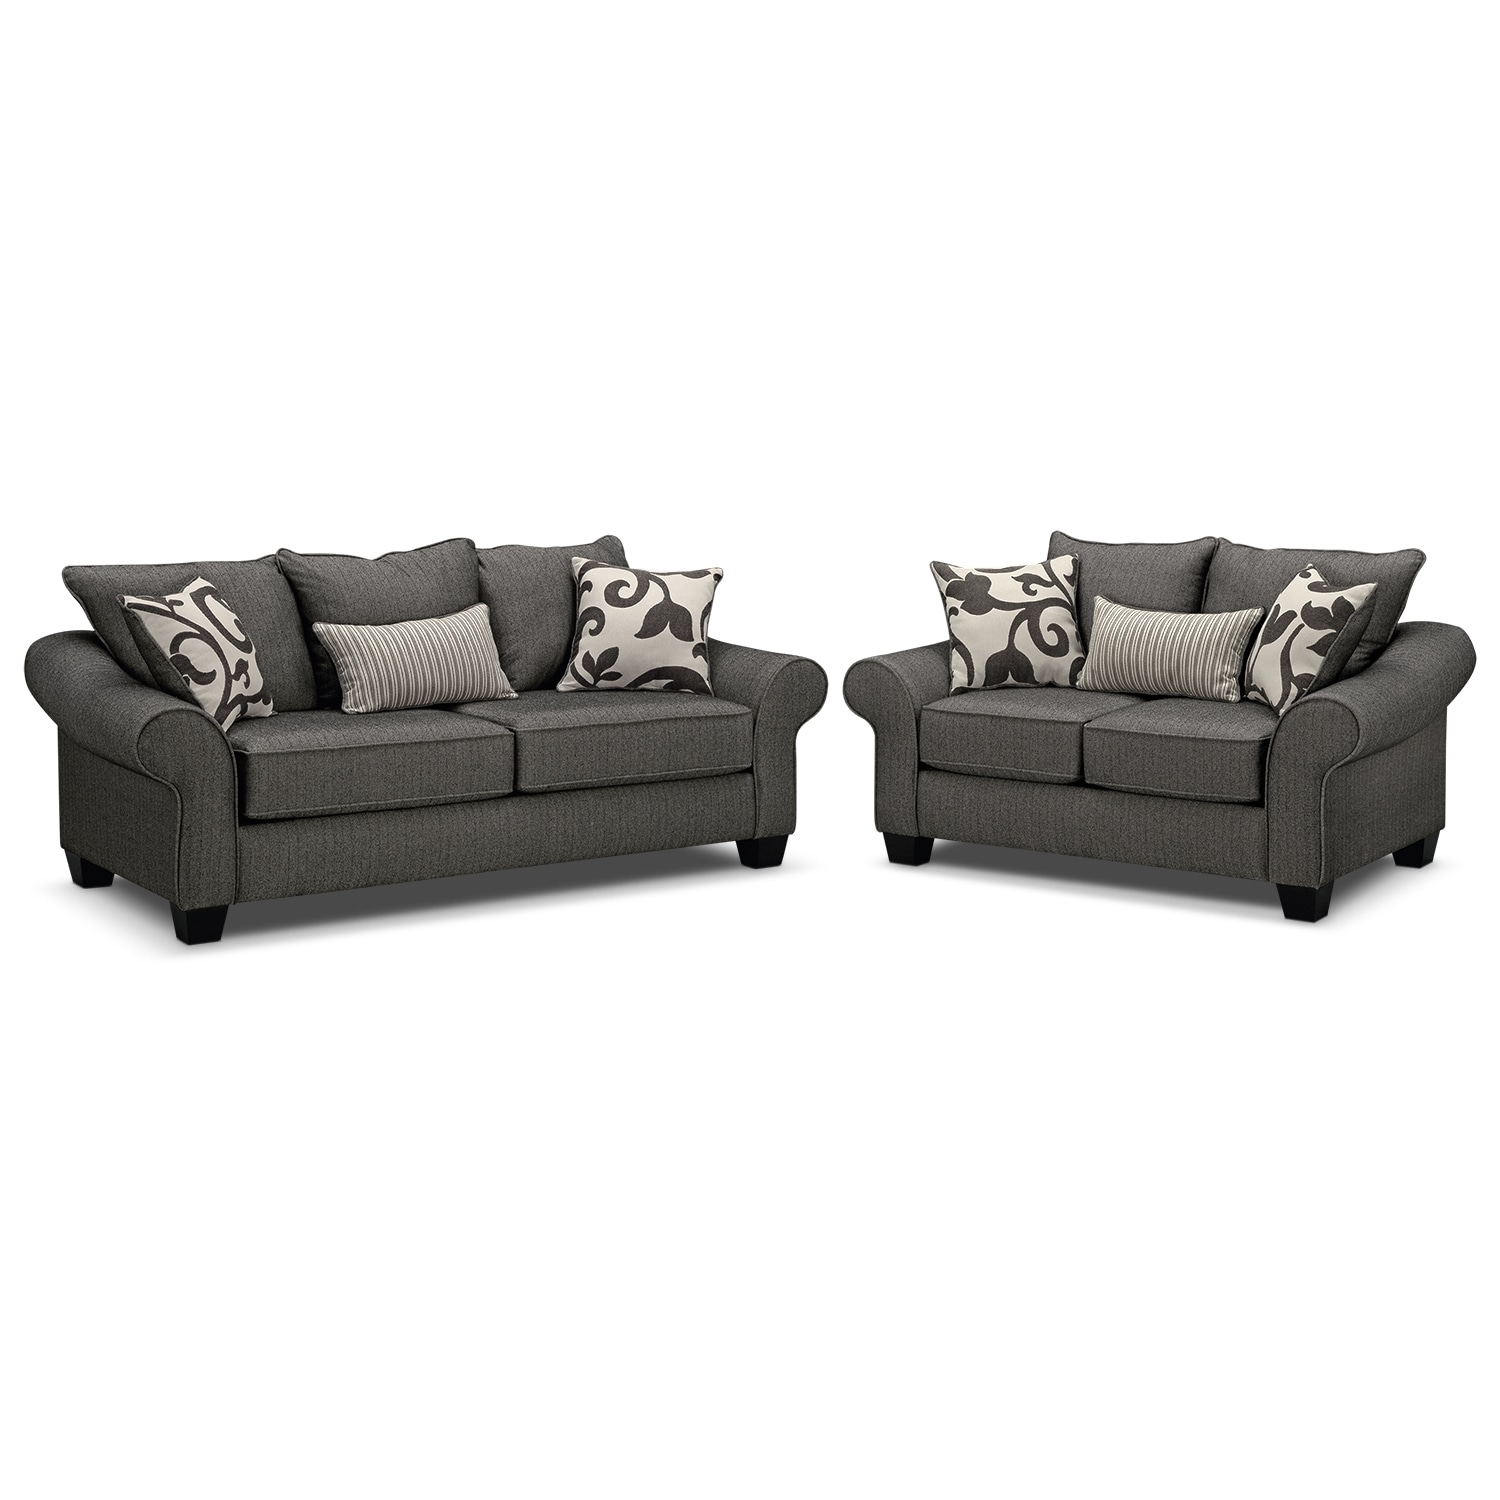 Colette Sofa And Loveseat Set - Gray By Kroehler